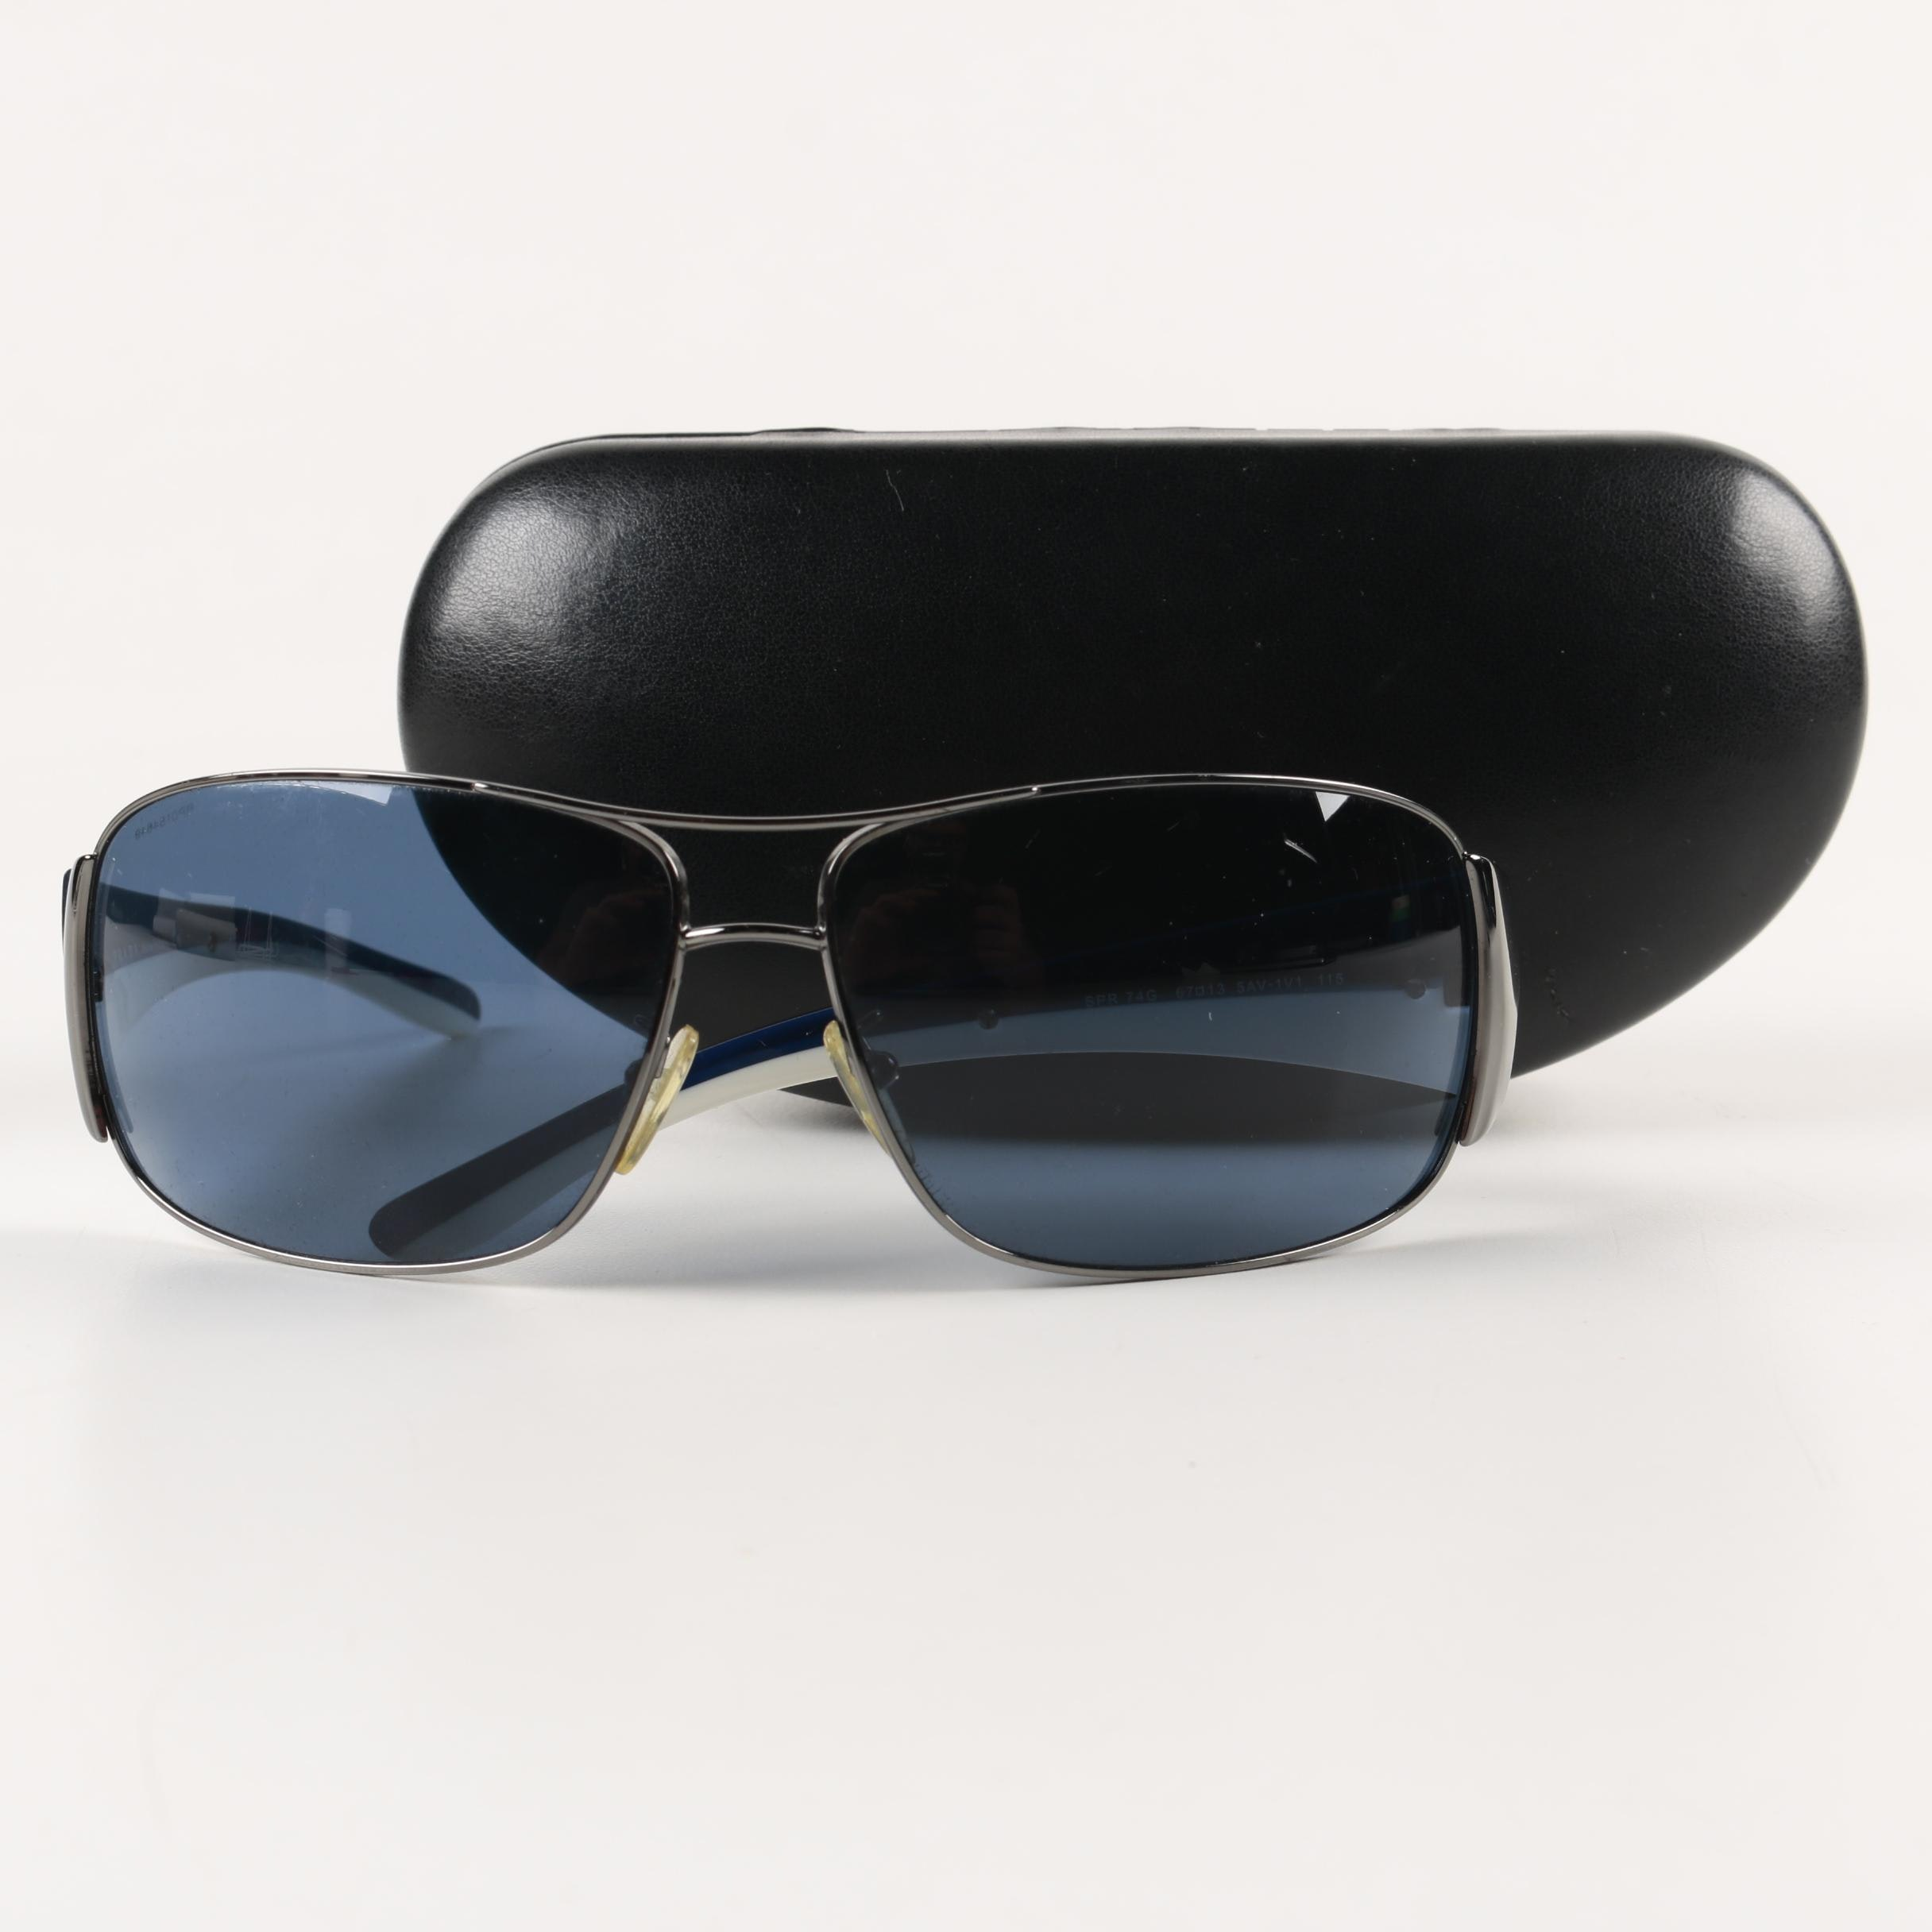 Prada Sunglasses with Case